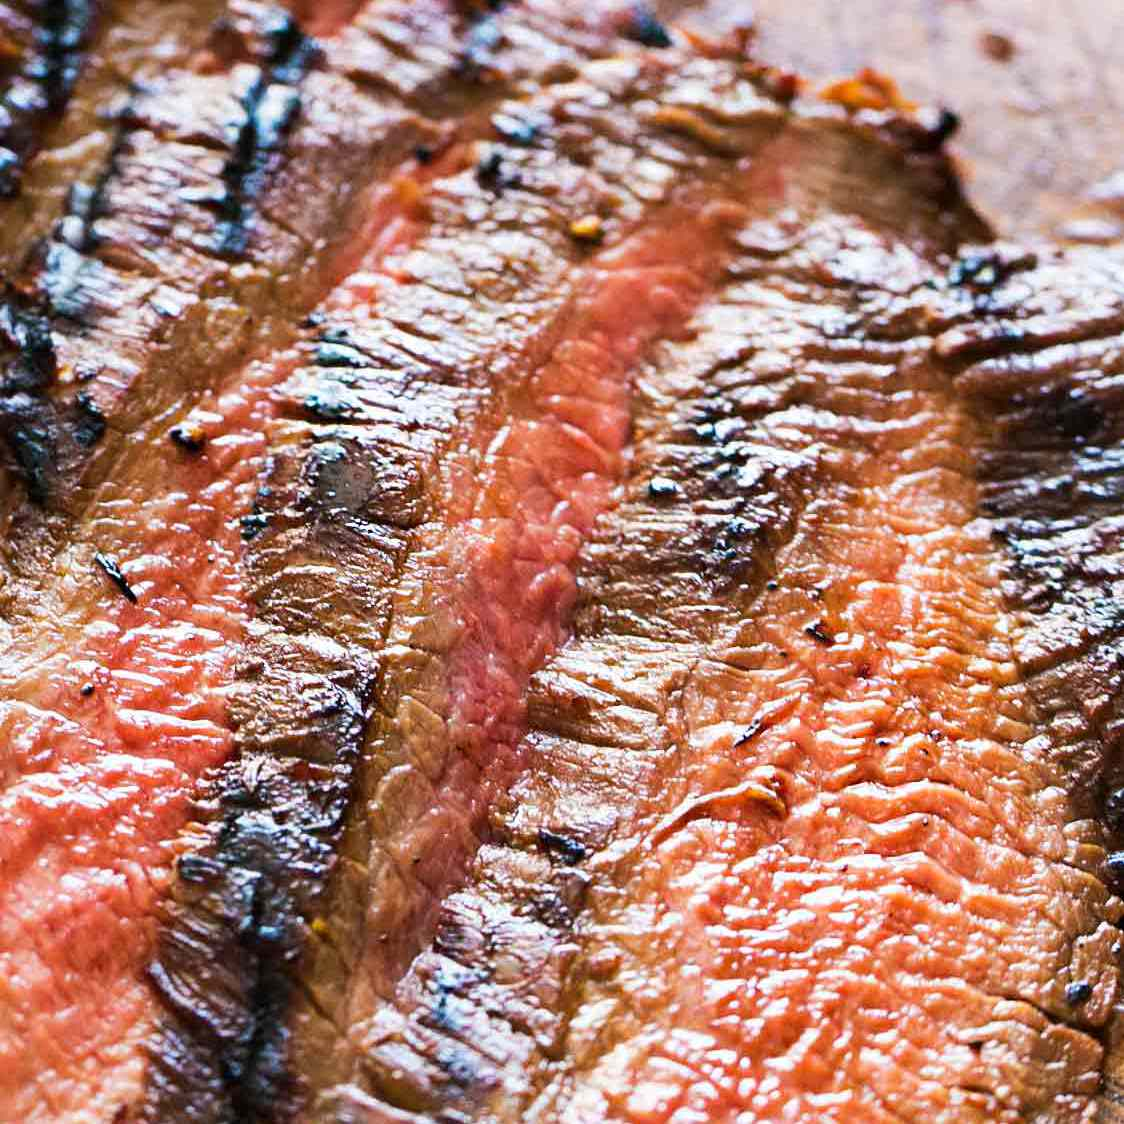 Grilled Flank Steak with brown edge and pink center sliced thinly